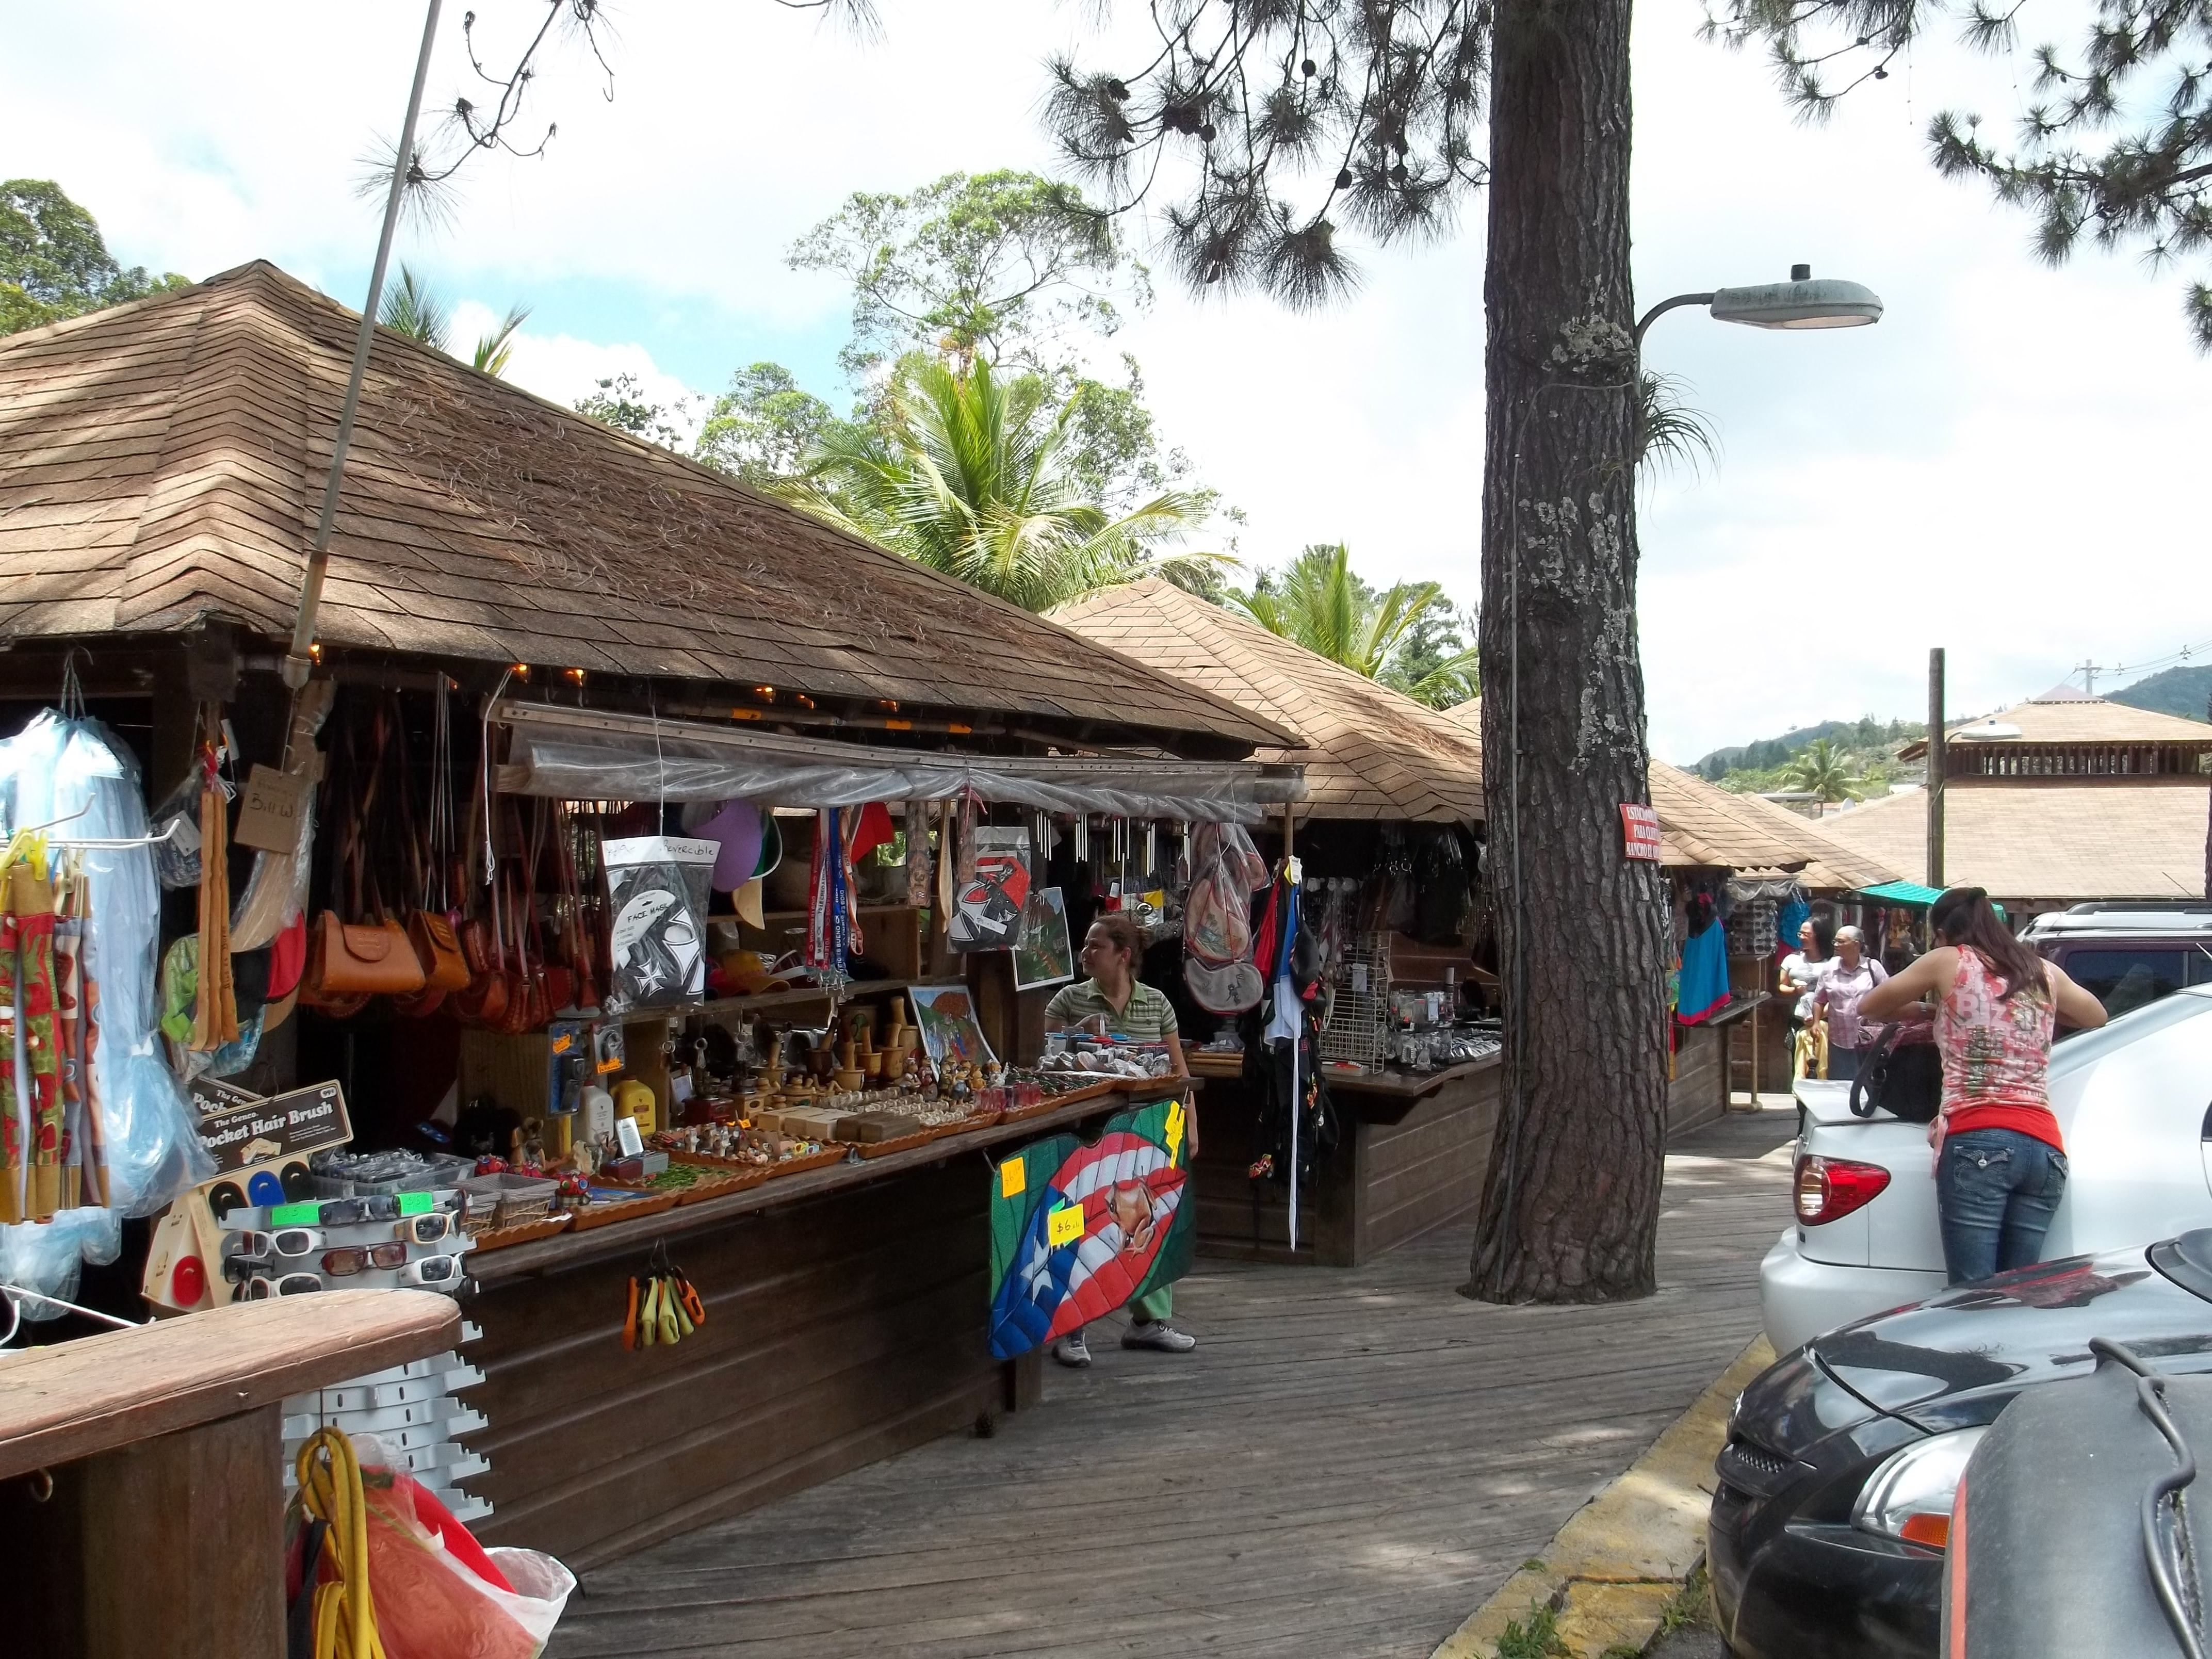 The Guavate neighborhood in Cayey also has booths  lined along the road that sell Puerto Rican souvenirs.